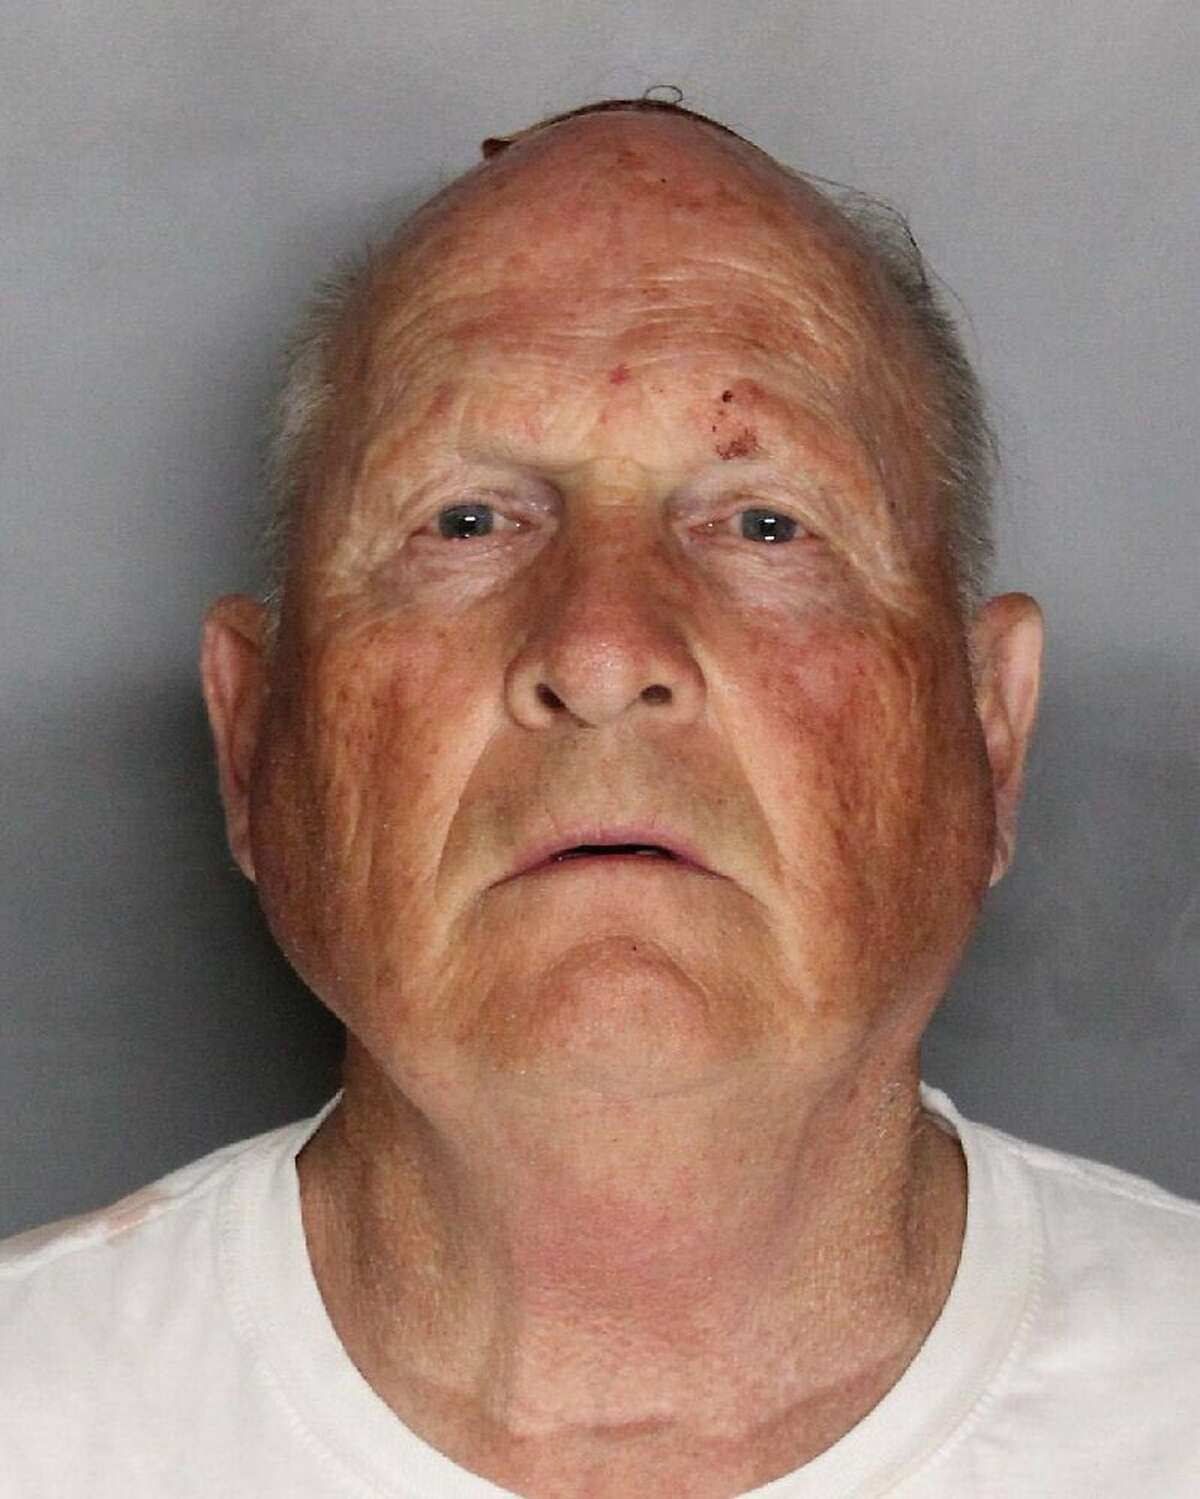 This undated law enforcement photo provided by the Sacramento County, Calif., Sheriff's Office shows Joseph James DeAngelo. DeAngelo, a suspected California serial killer who committed at least 12 homicides and 45 rapes throughout the state in the 1970s and '80s was identified Wednesday, April 25, 2018, as a former police officer, an official said. (Sacramento County Sheriff's Office via AP)